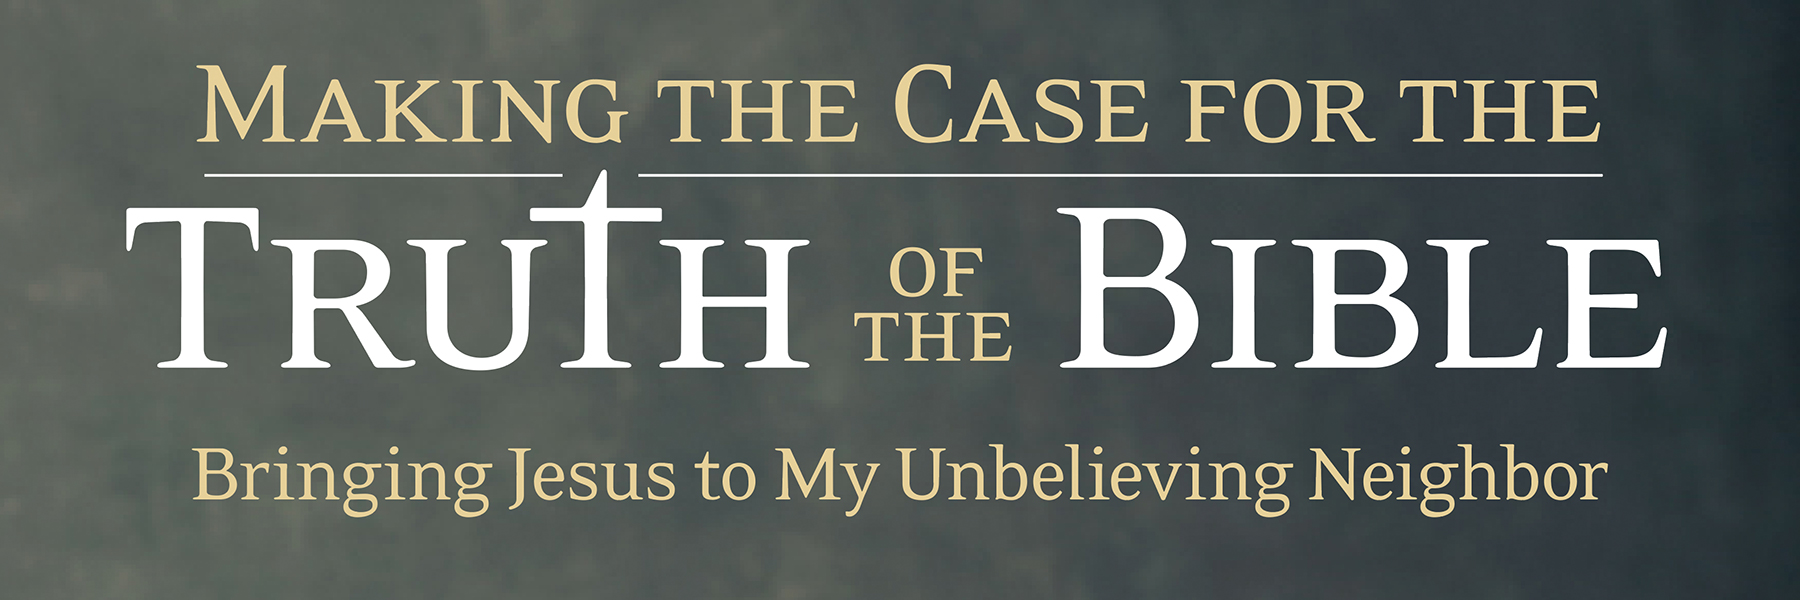 Making the Case for the Truth of the Bible: Bringing Jesus to My Unbelieving Neighbor graphic